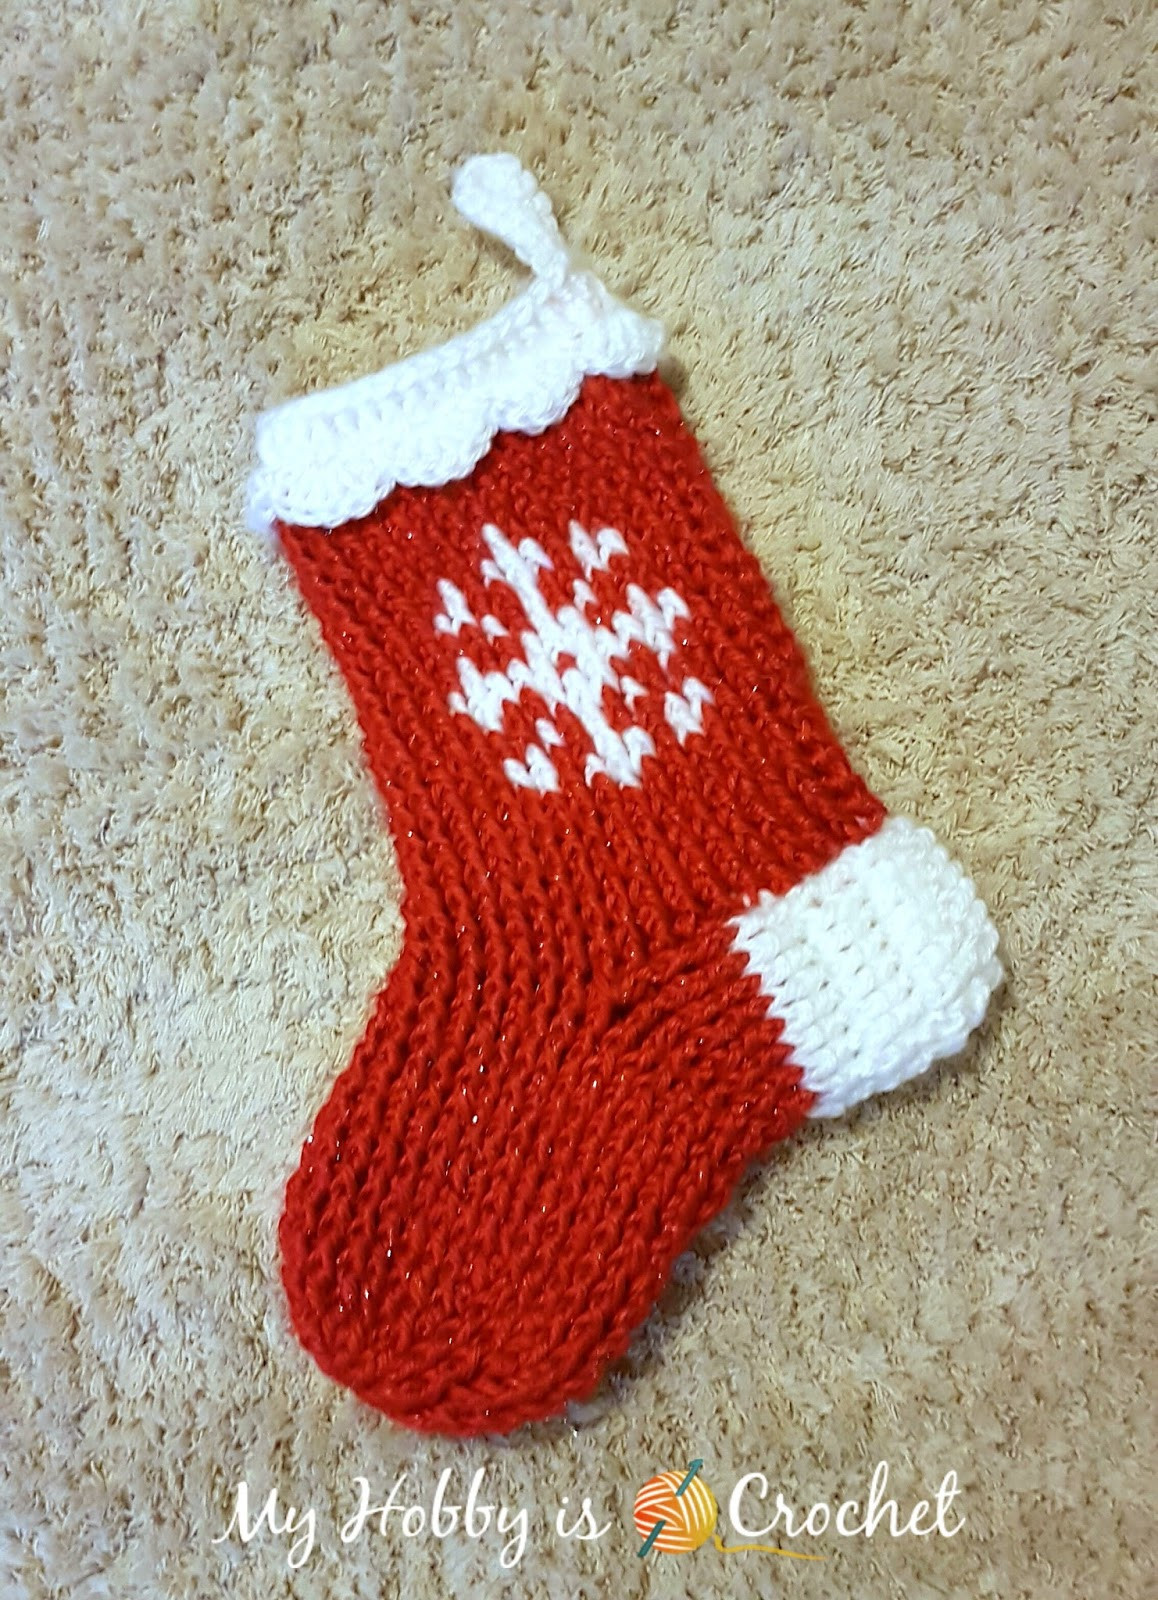 My Hobby Is Crochet Snowflake Christmas Stocking or